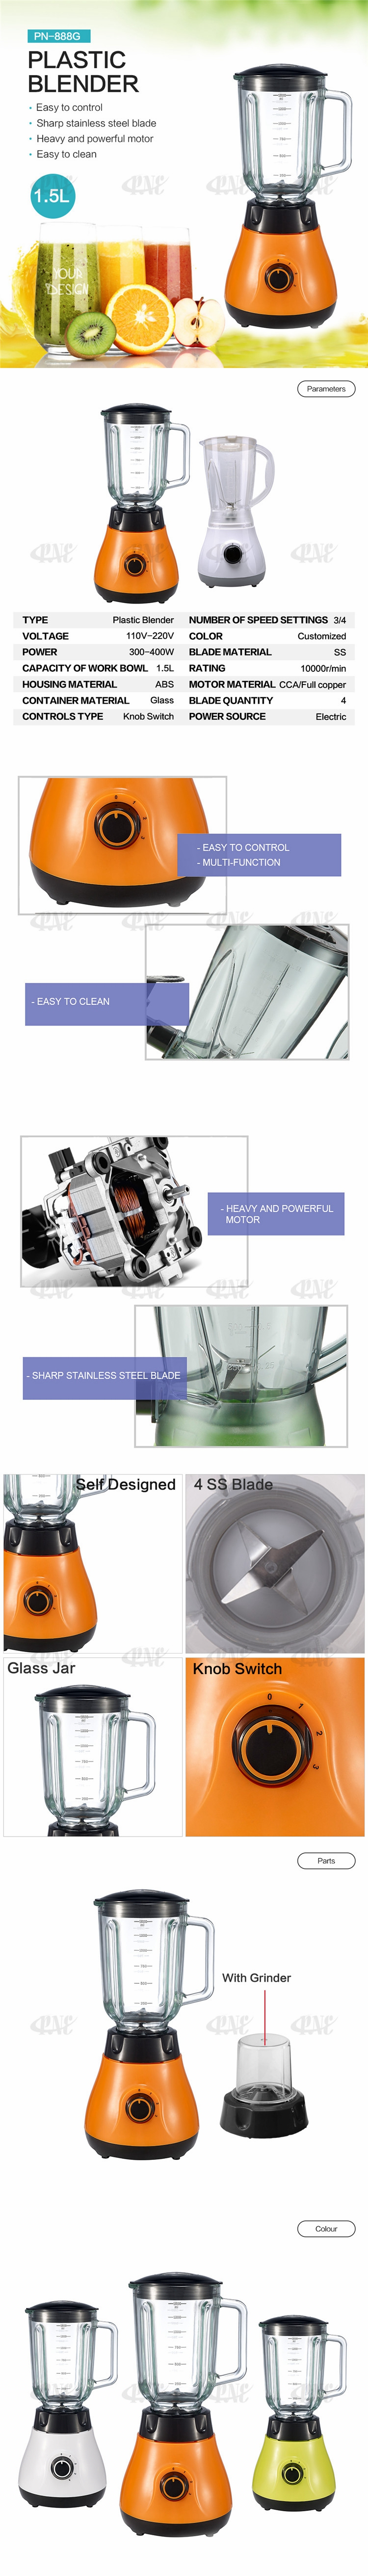 Electric Juicer Blender Table Food Processor Heavy Duty Mixer Grinder In India